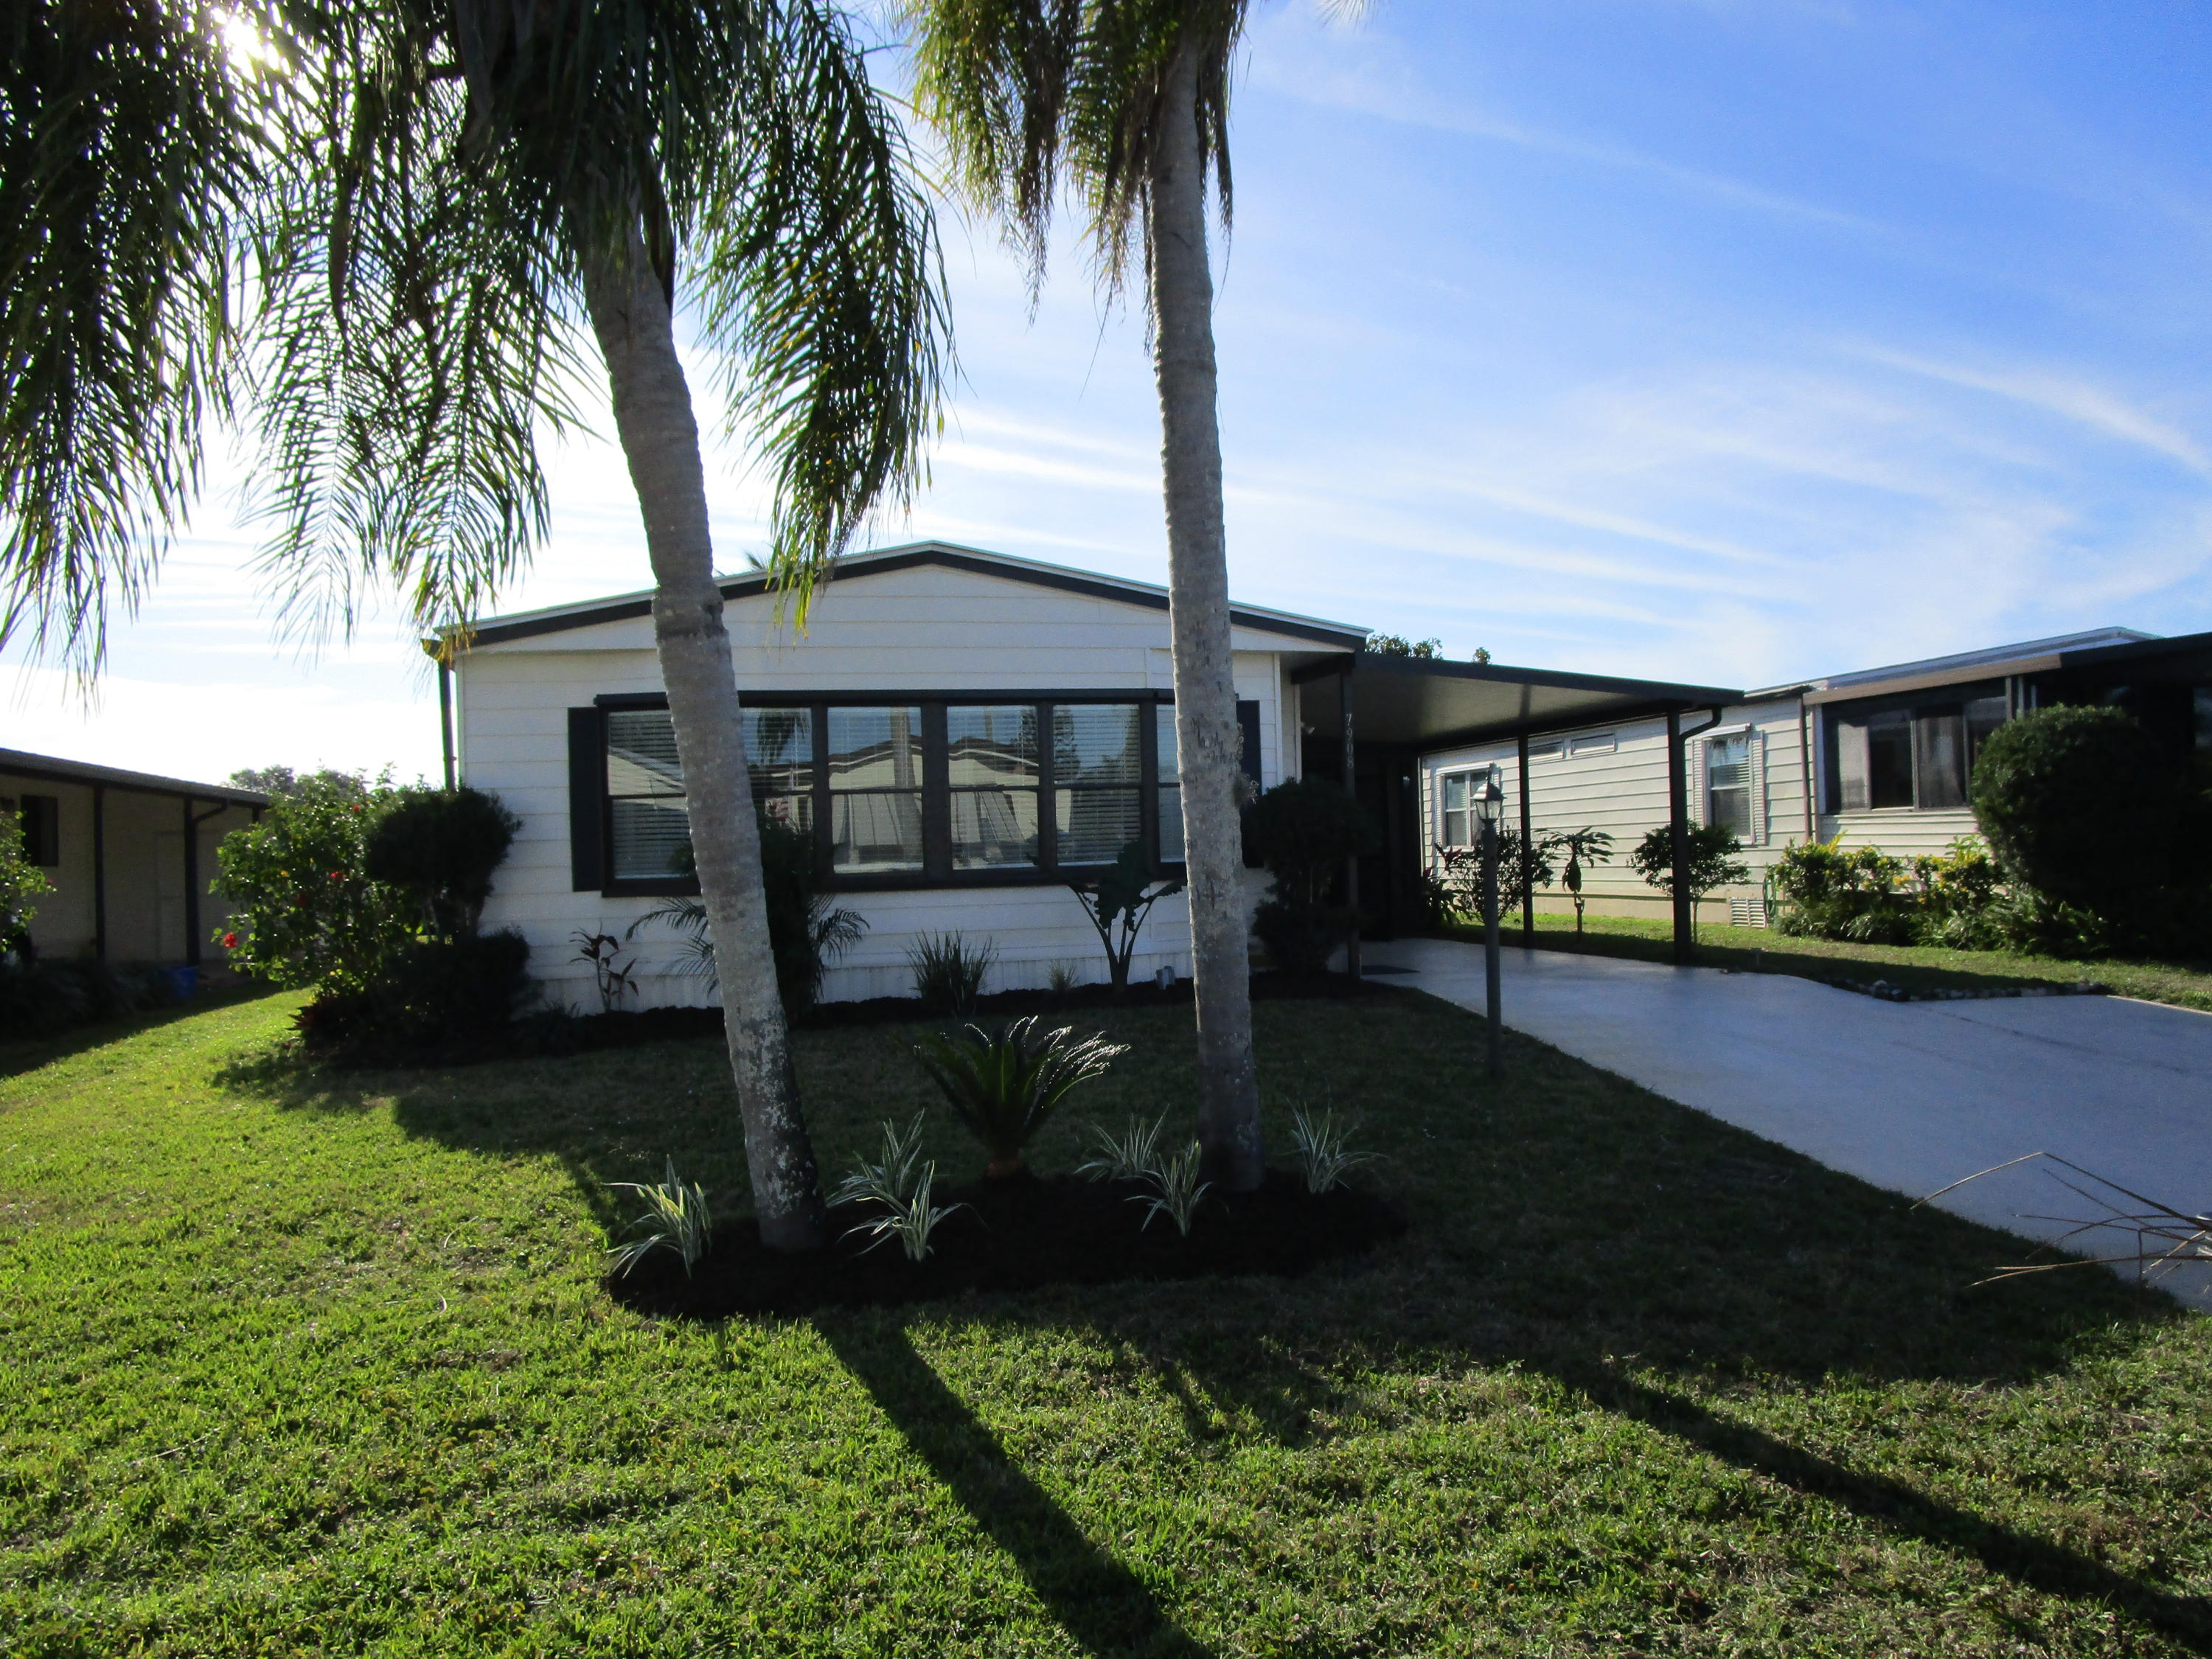 7908 Continental Drive, Hobe Sound, Florida 33455, 2 Bedrooms Bedrooms, ,2 BathroomsBathrooms,Mobile/manufactured,For Sale,Continental,RX-10502250